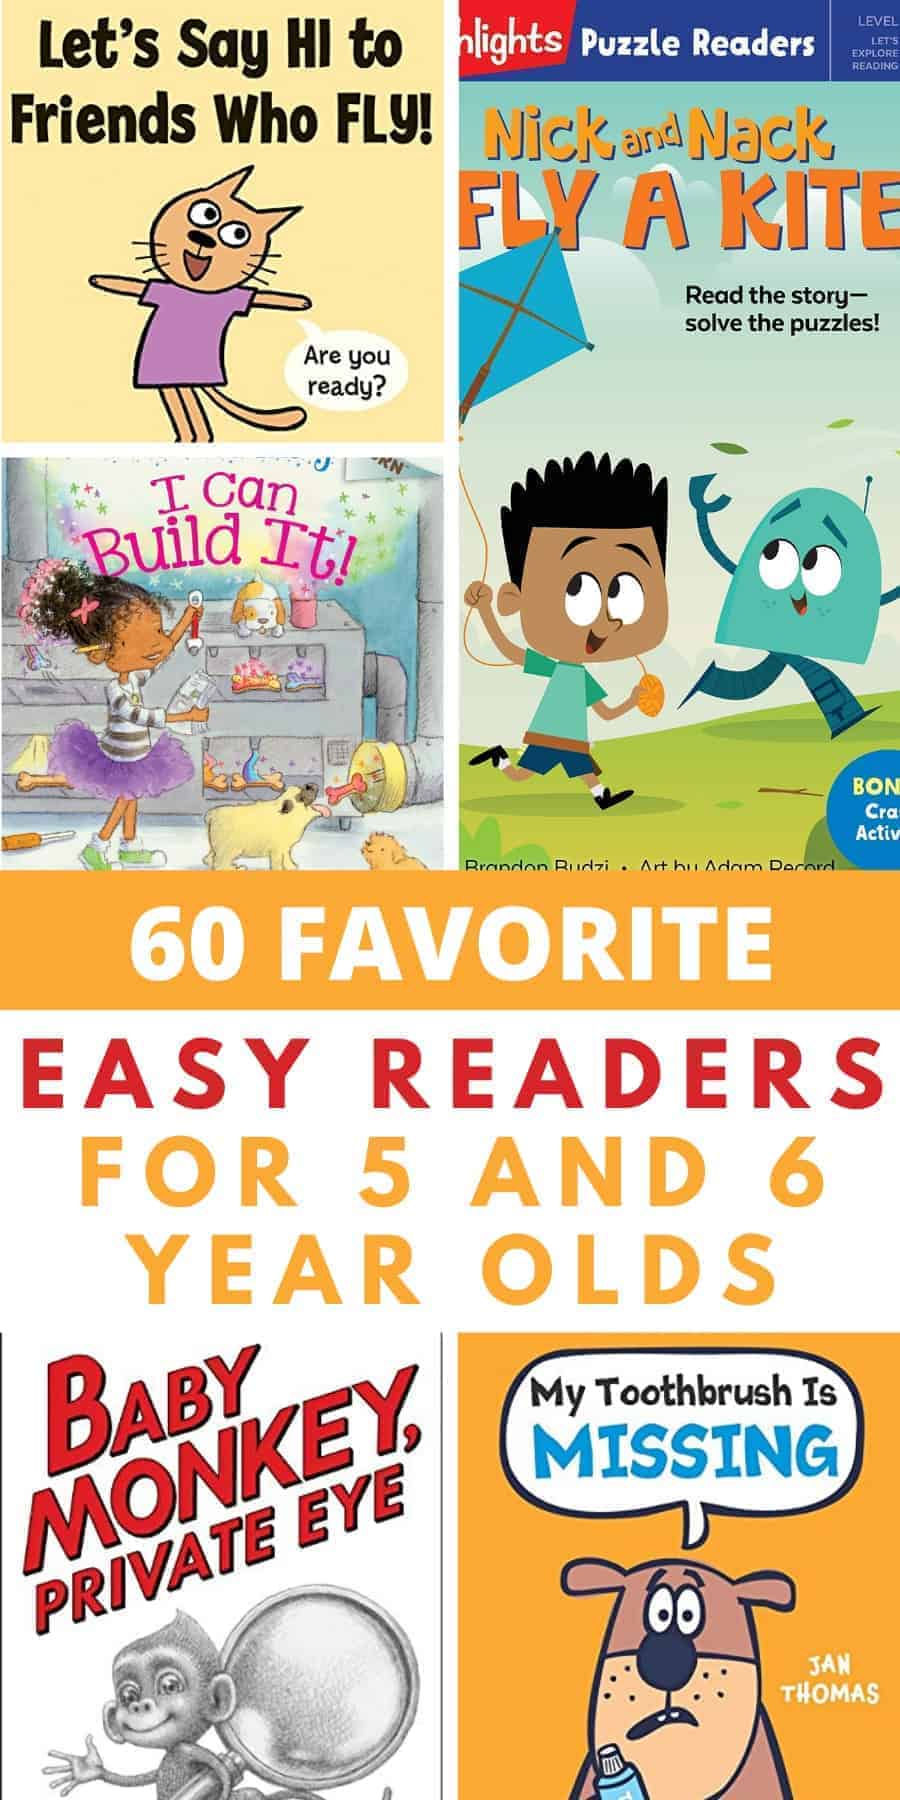 favorite easy readers for 5 and 6 year olds